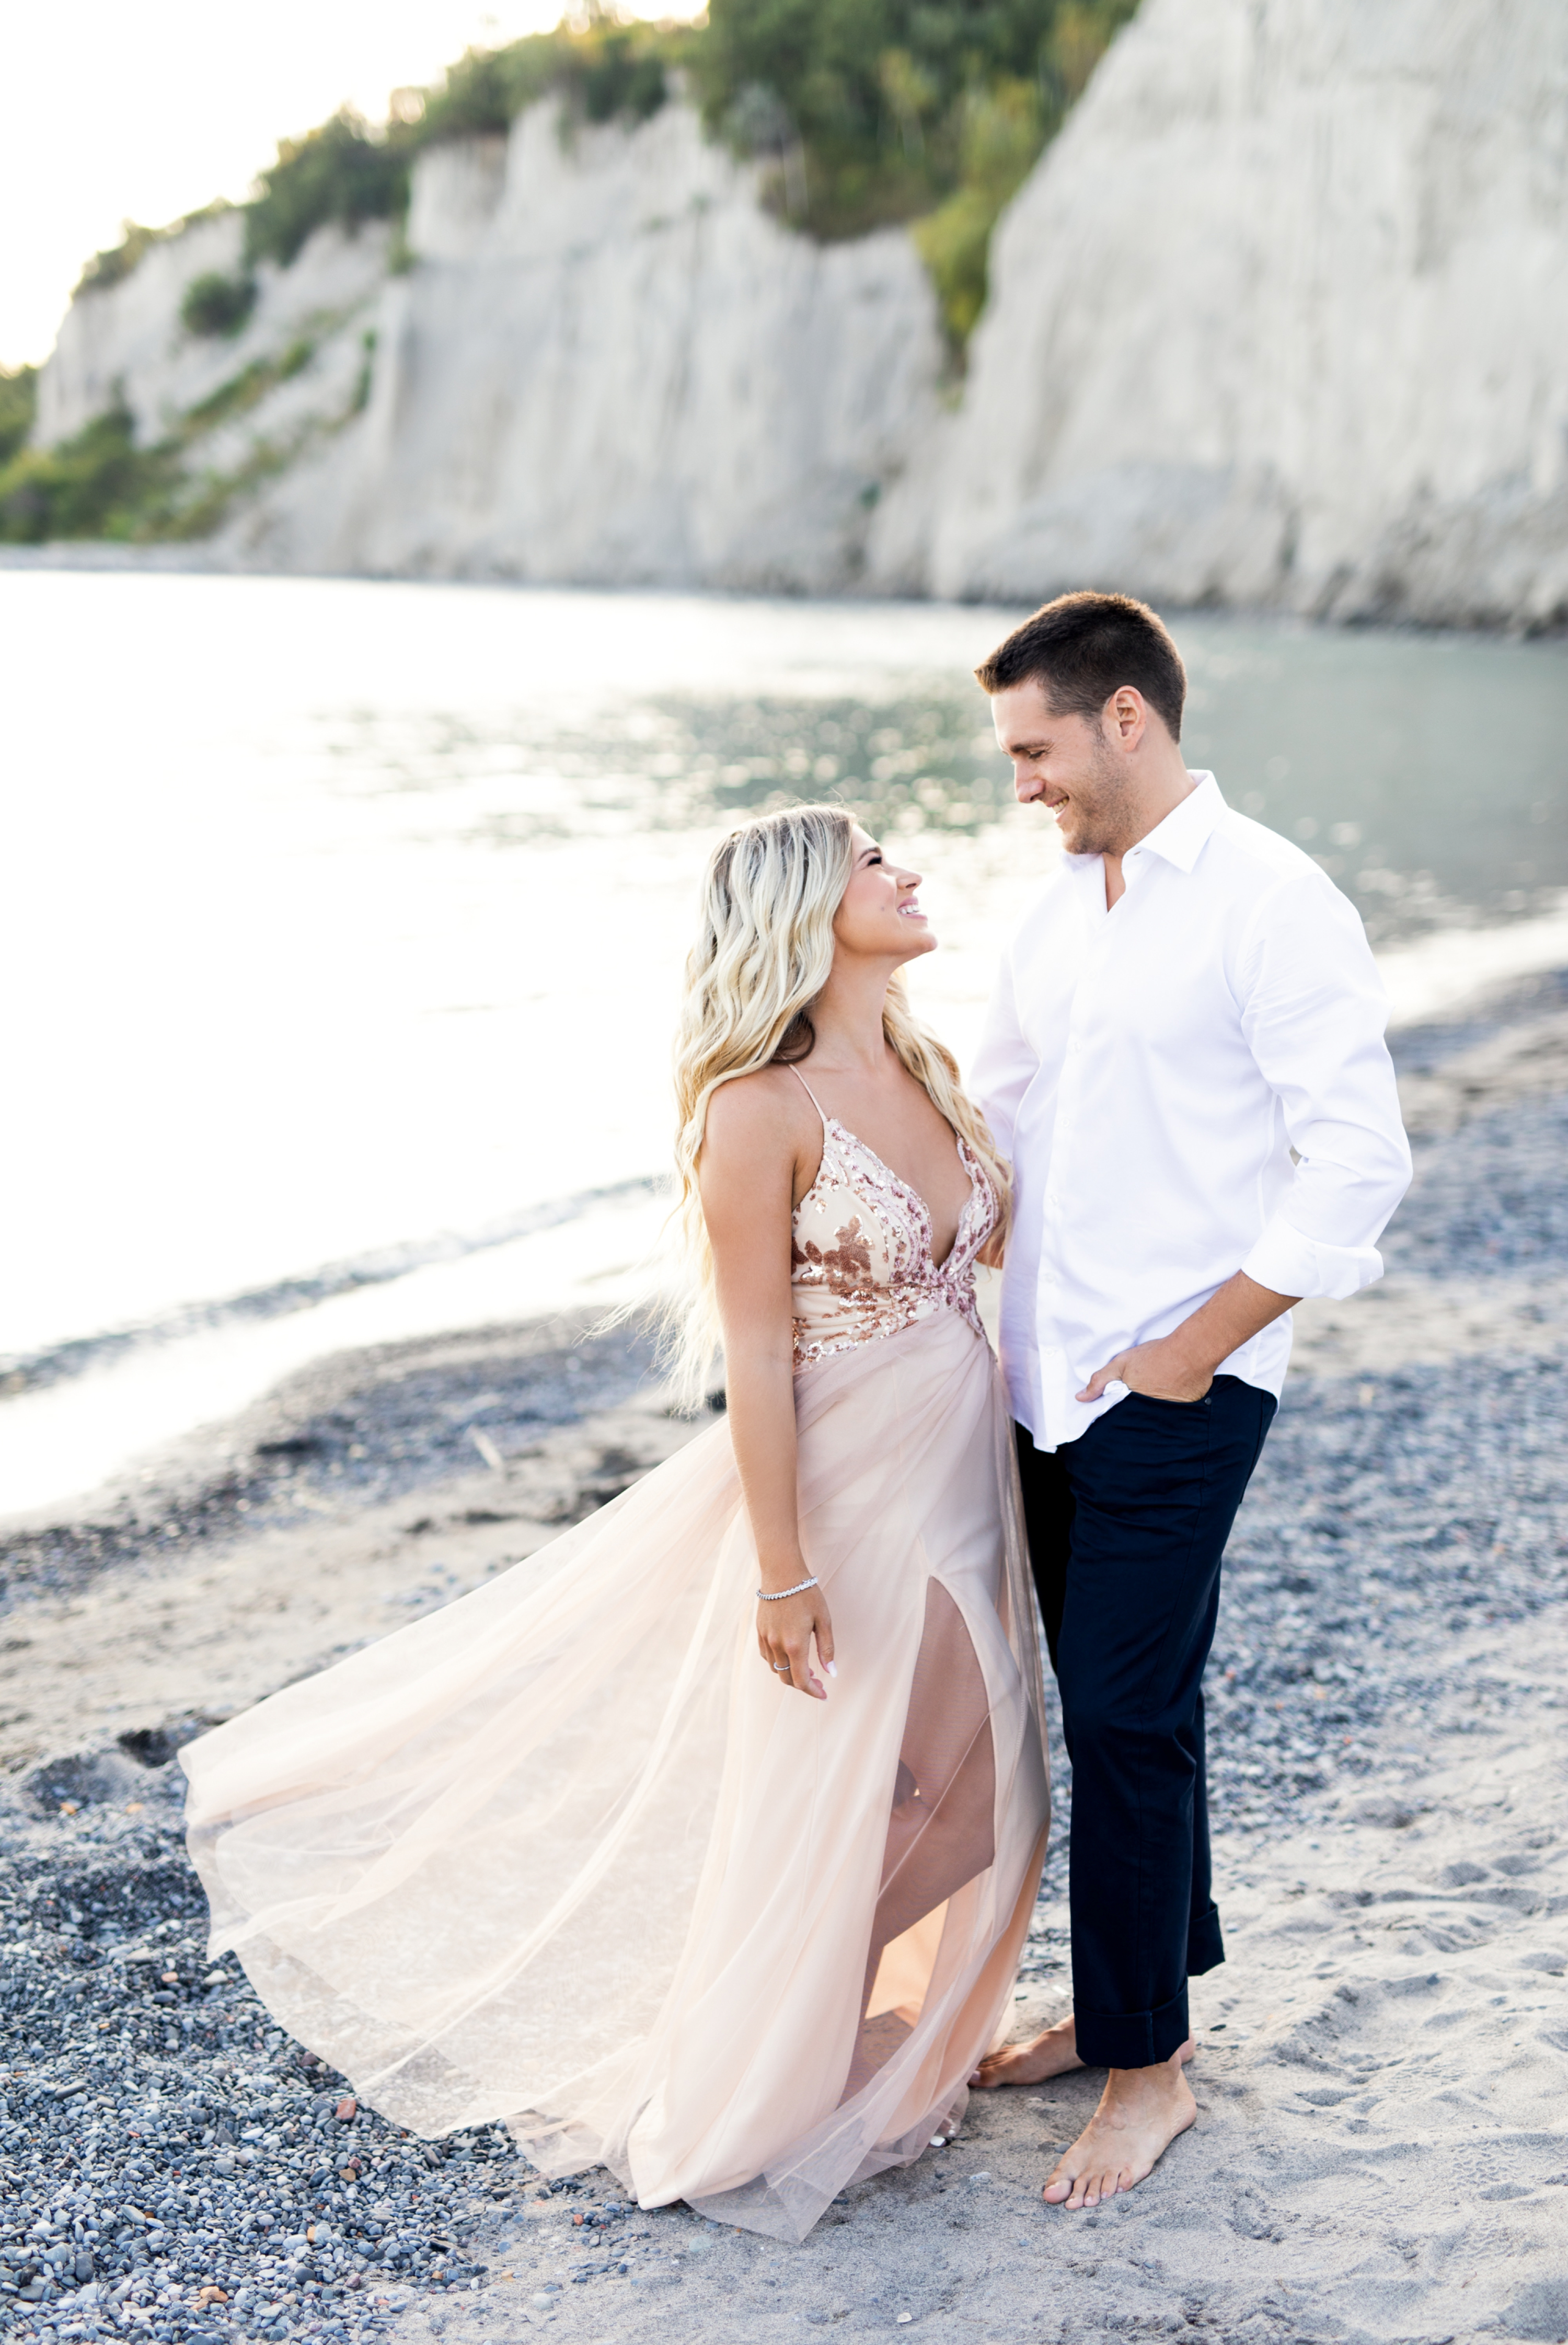 Zsuzsi Pal Photography, Guild Inn, Scarborough Bluffs, Engagement, Toronto, Beach